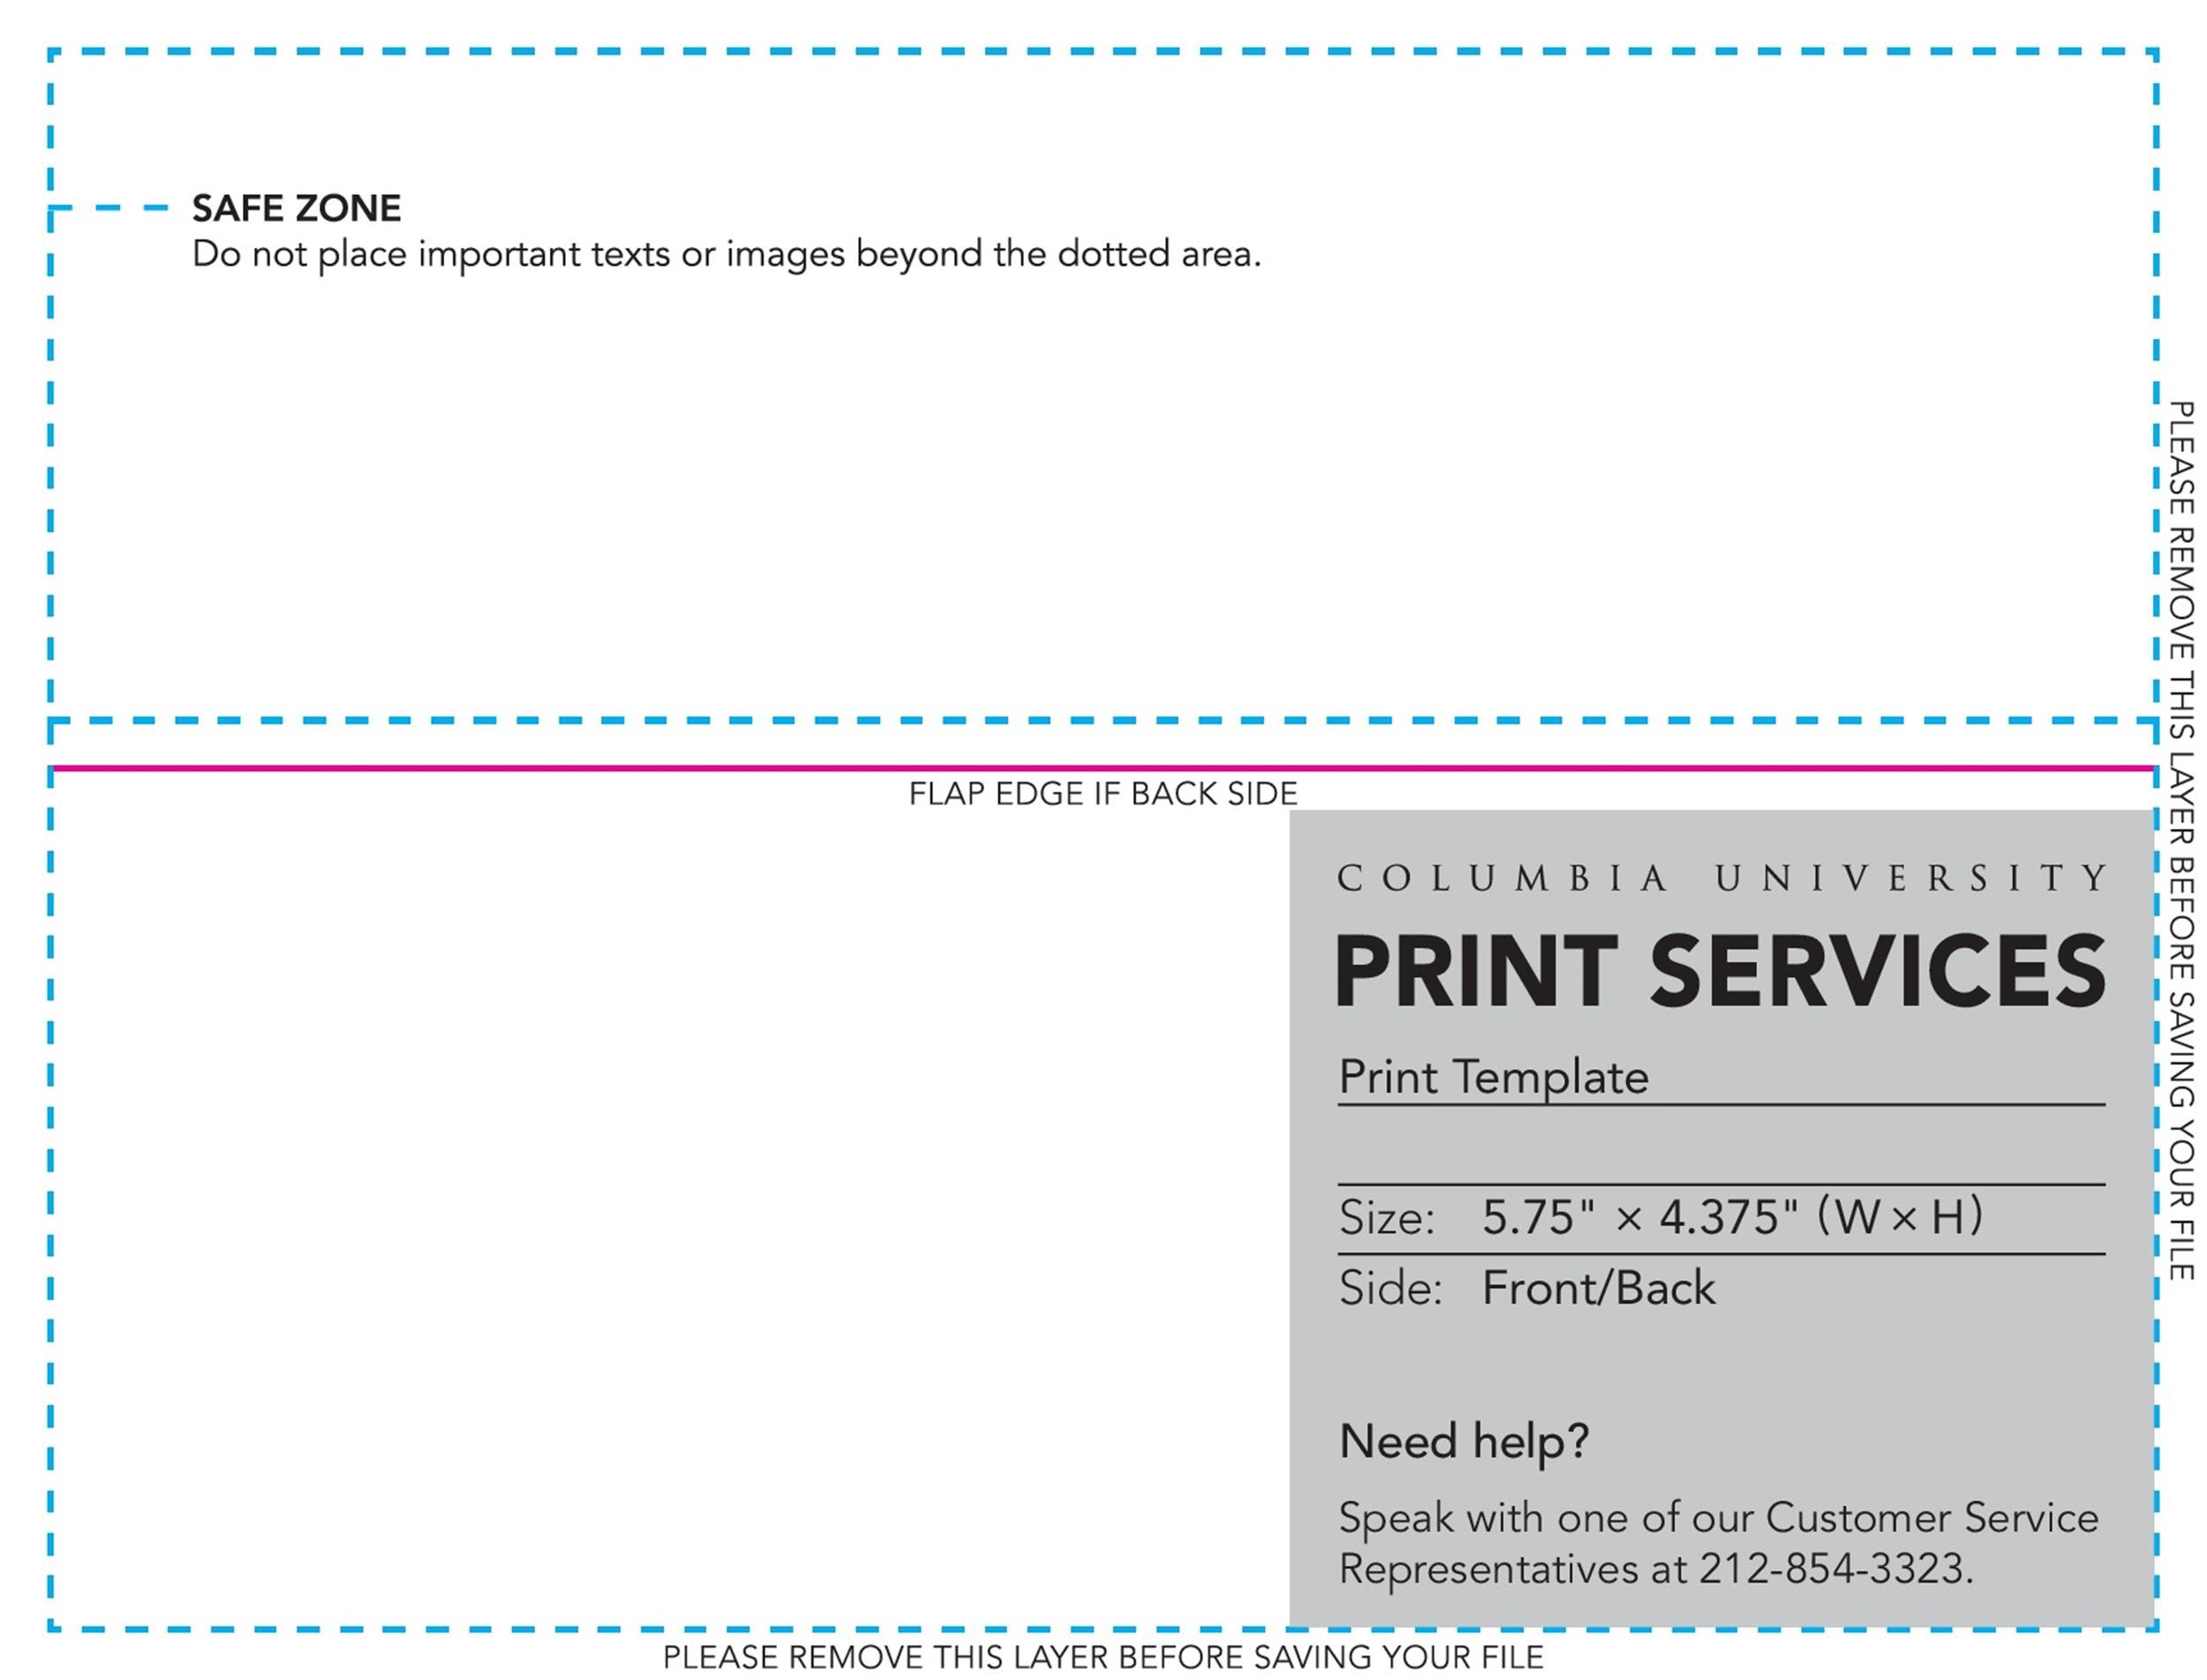 40+ FREE Envelope Templates (Word + PDF) - Template Lab - sample a2 envelope template